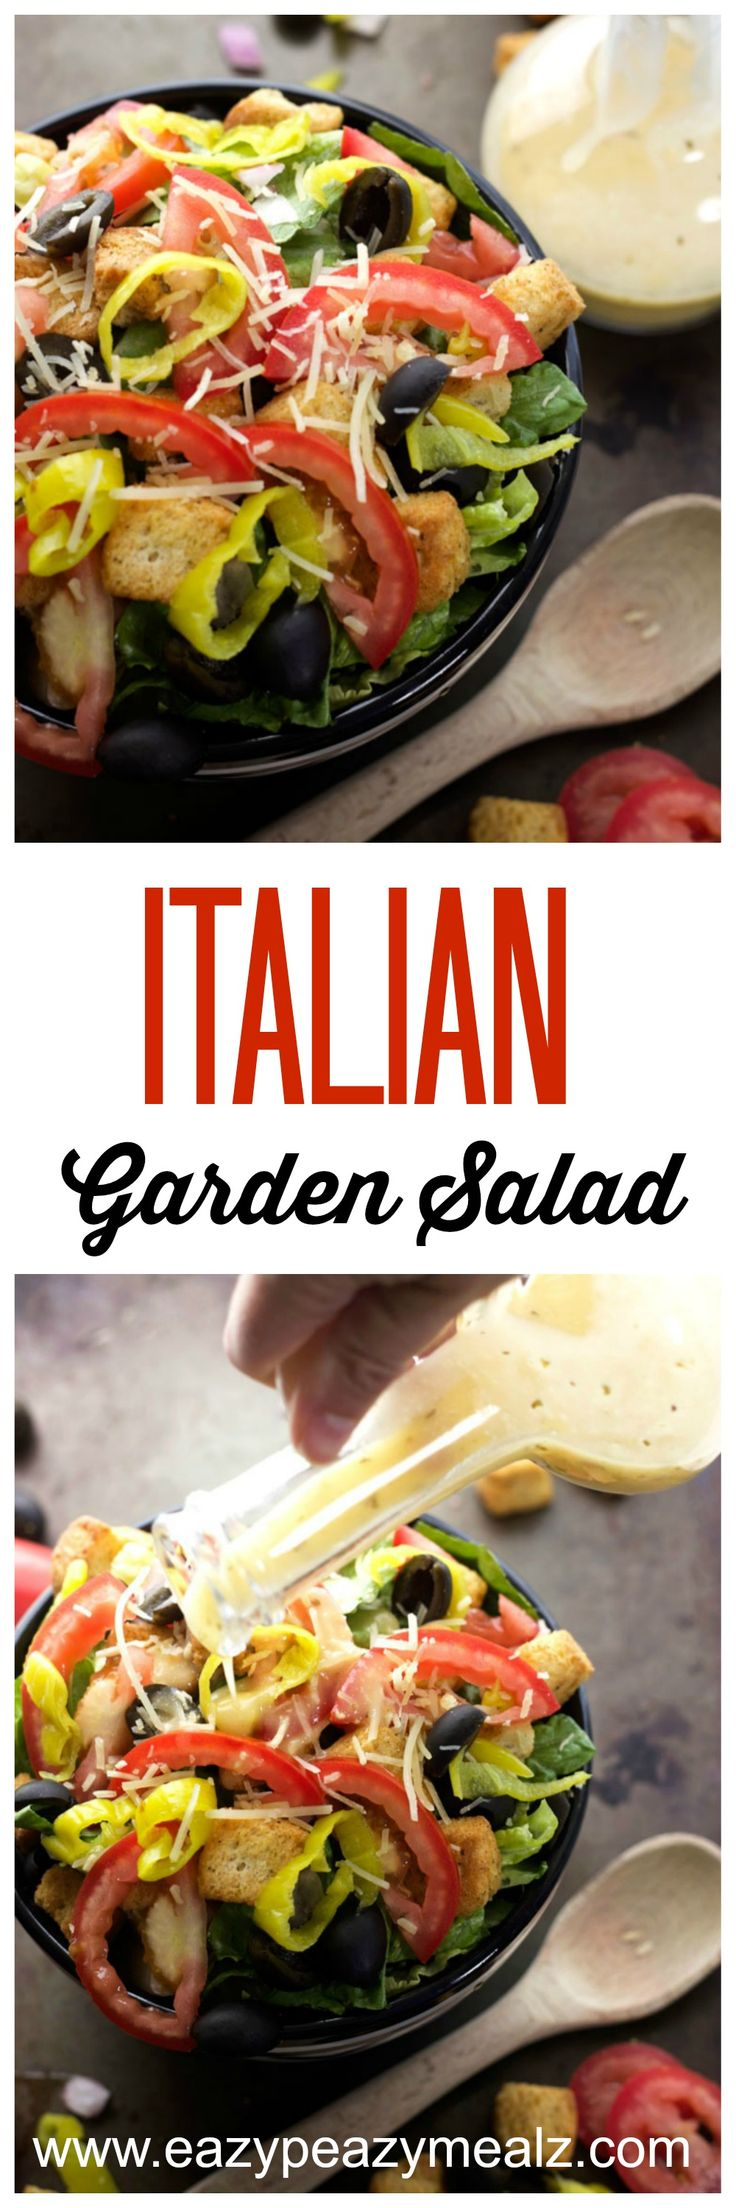 Italian Garden Salad- An easy throw together salad packed with flavor and ideal as a side for Digiorno Pizza #YouBeTheJudge #DiGiorno #CleverGirls #ad - Eazy Peazy Mealz